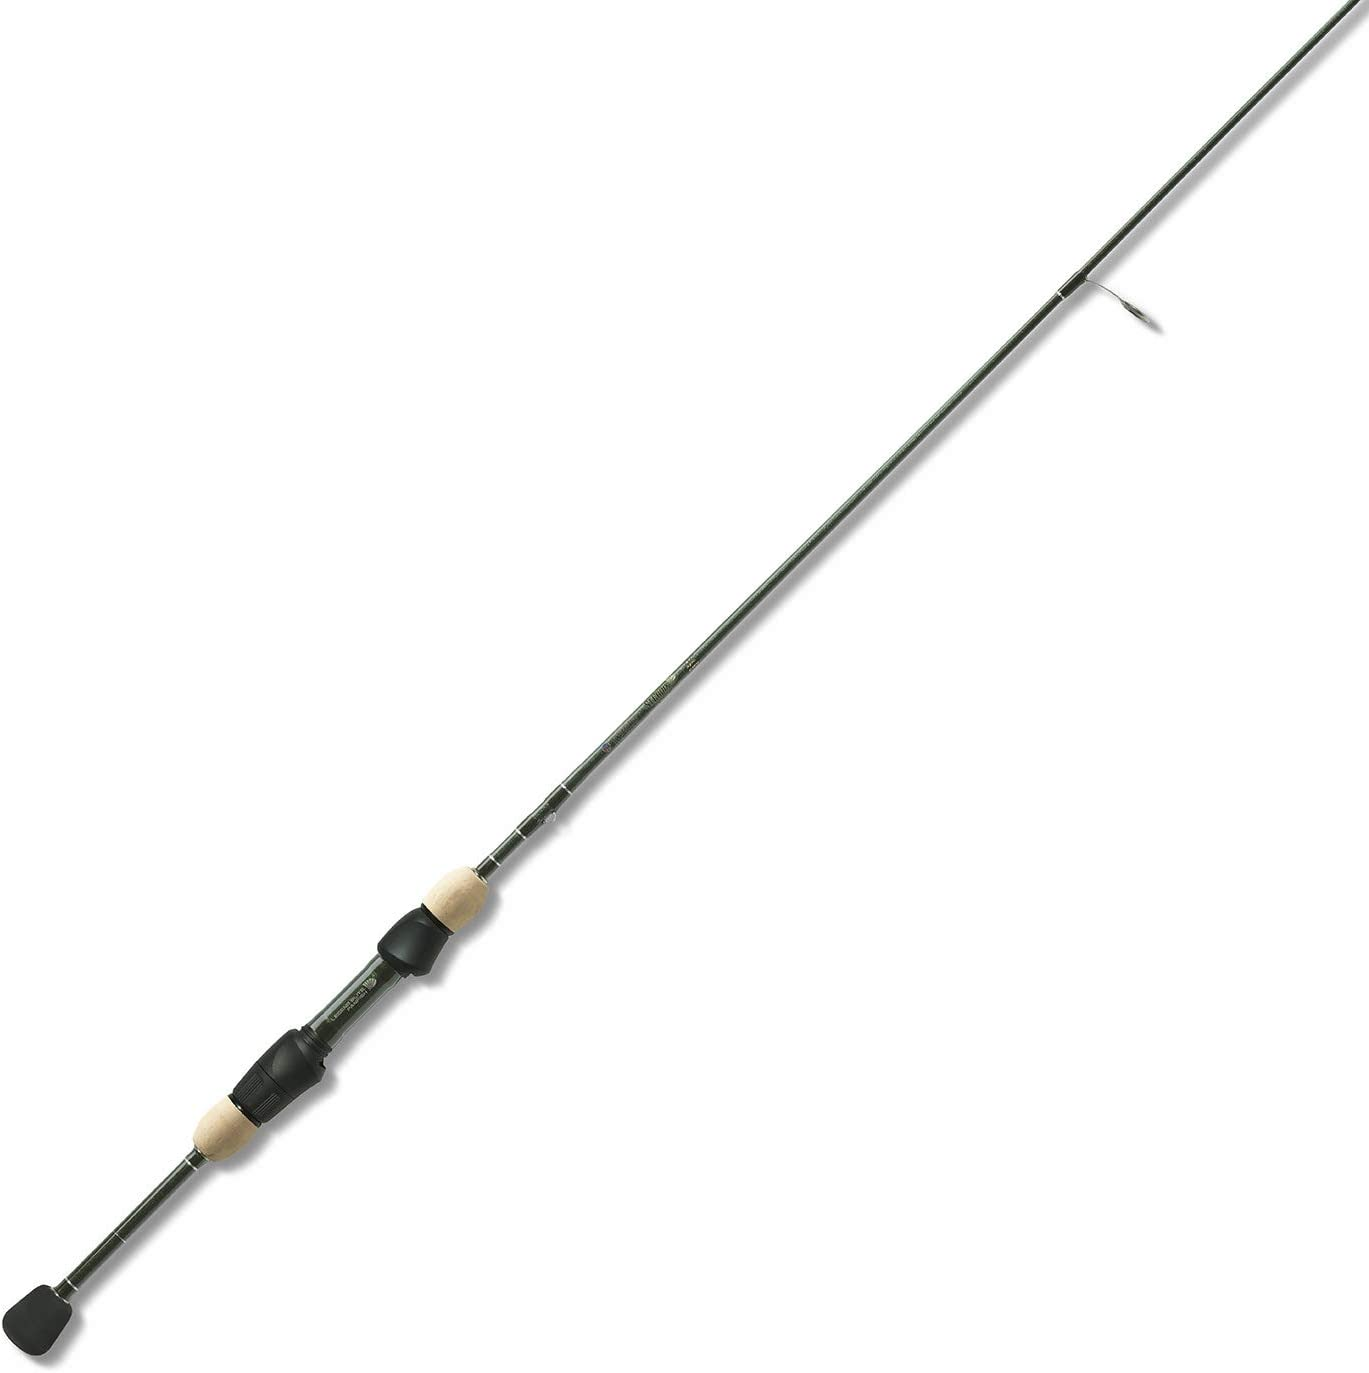 Ecooda 1-Piece Slow Pitch Jigging Spinning Casting Fishing Rod with Fuji K-Frame Alconite Ring Guide and Fuji Reel Seat Saltwater Freshwater 6 6 3 ML M MH Action Max Drag 24-39 Lbs